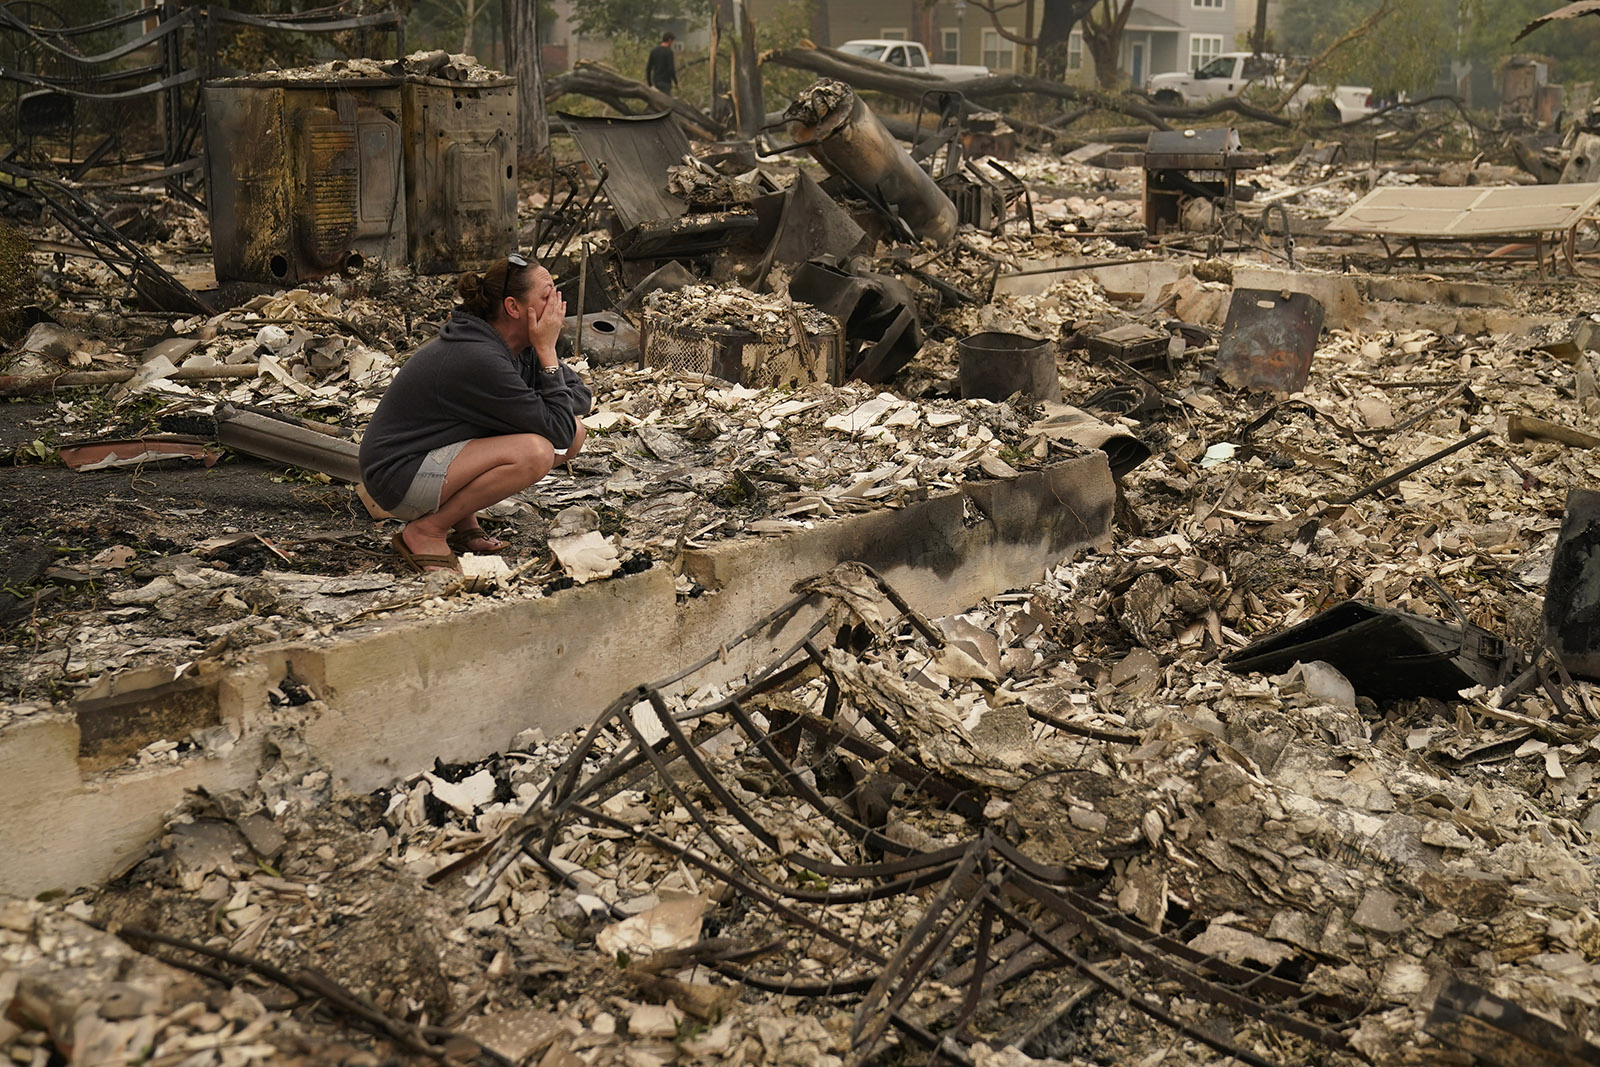 """Desiree Pierce cries as she visits her home destroyed by the Almeda Fire on Friday, September 11, in Talent, Oregon. """"I just needed to see it, to get some closure,"""" said Pierce."""